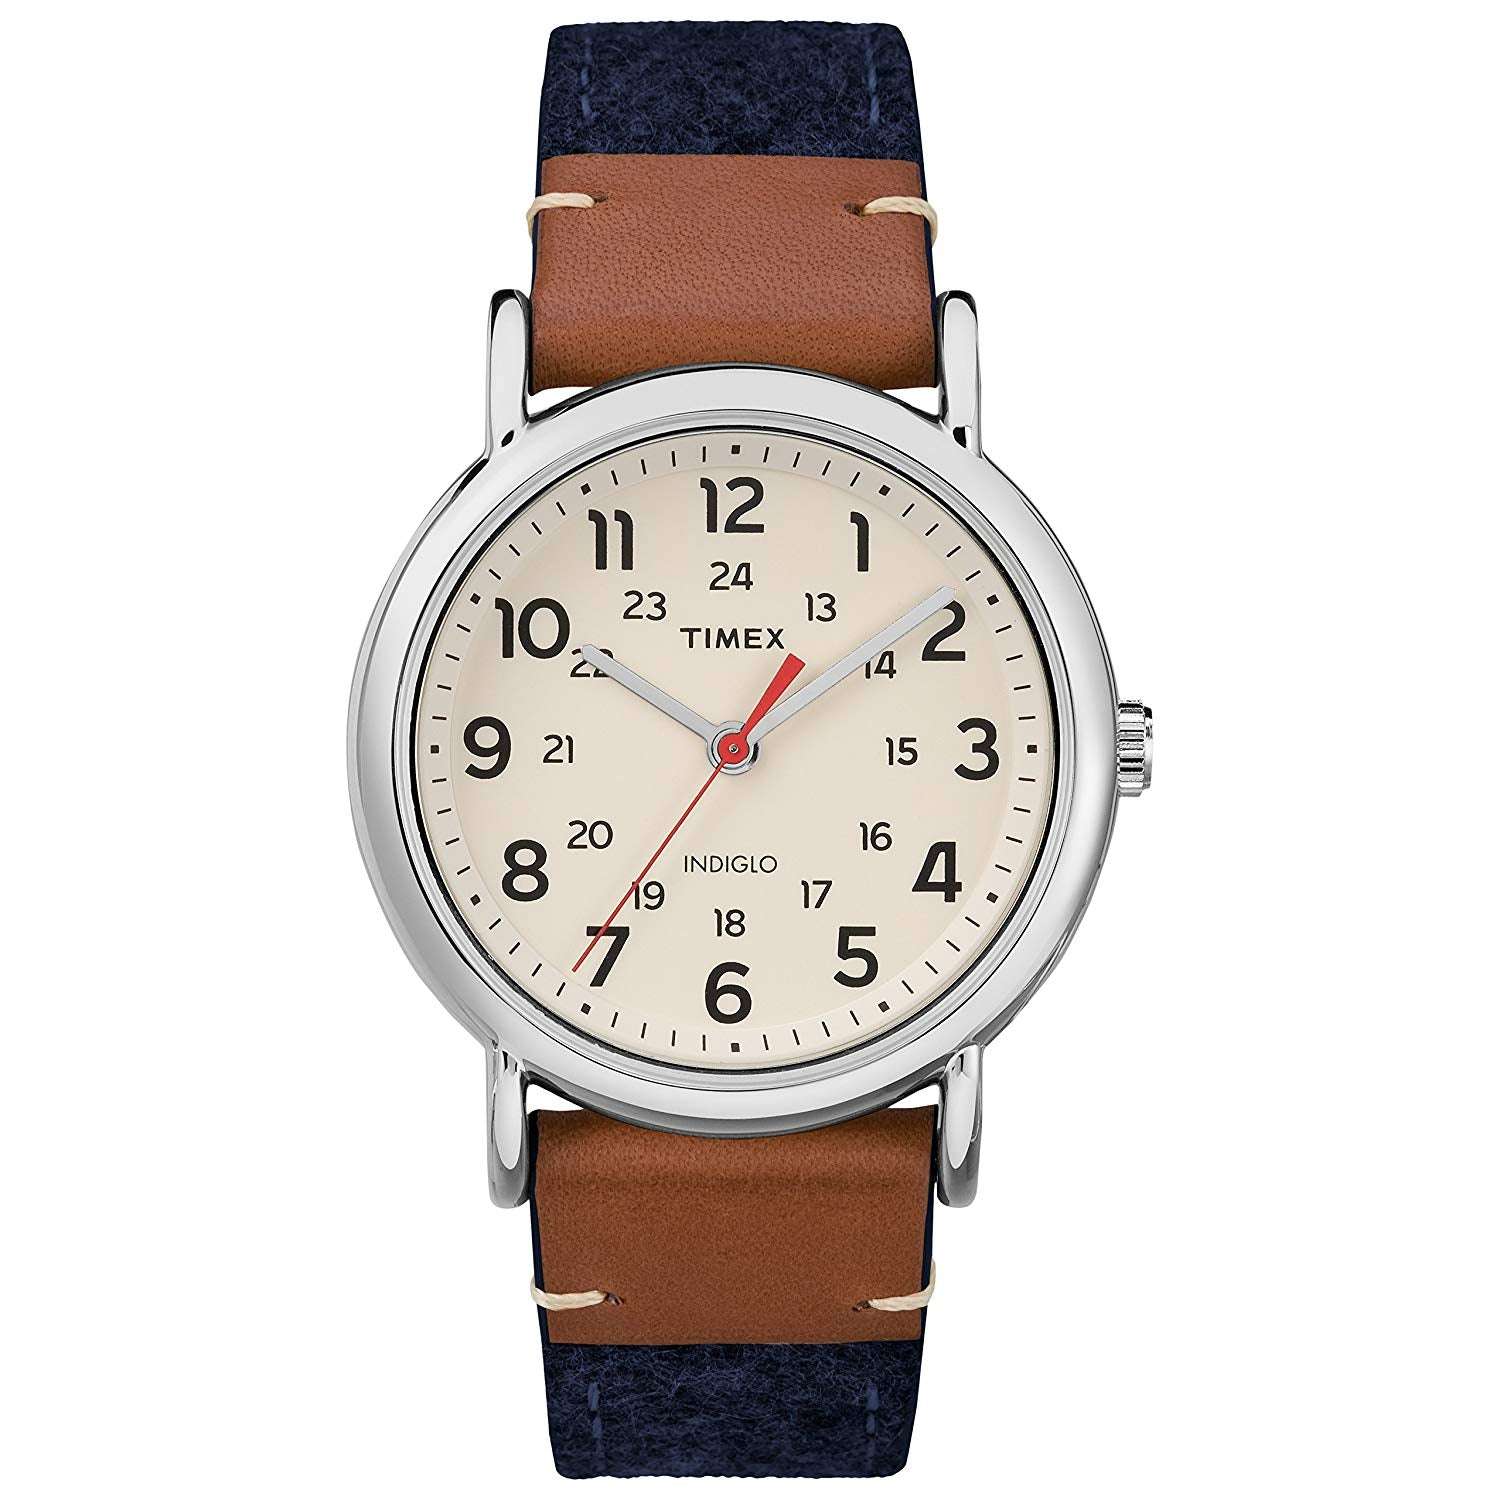 Timex Men's Quartz Watch with Textile Strap